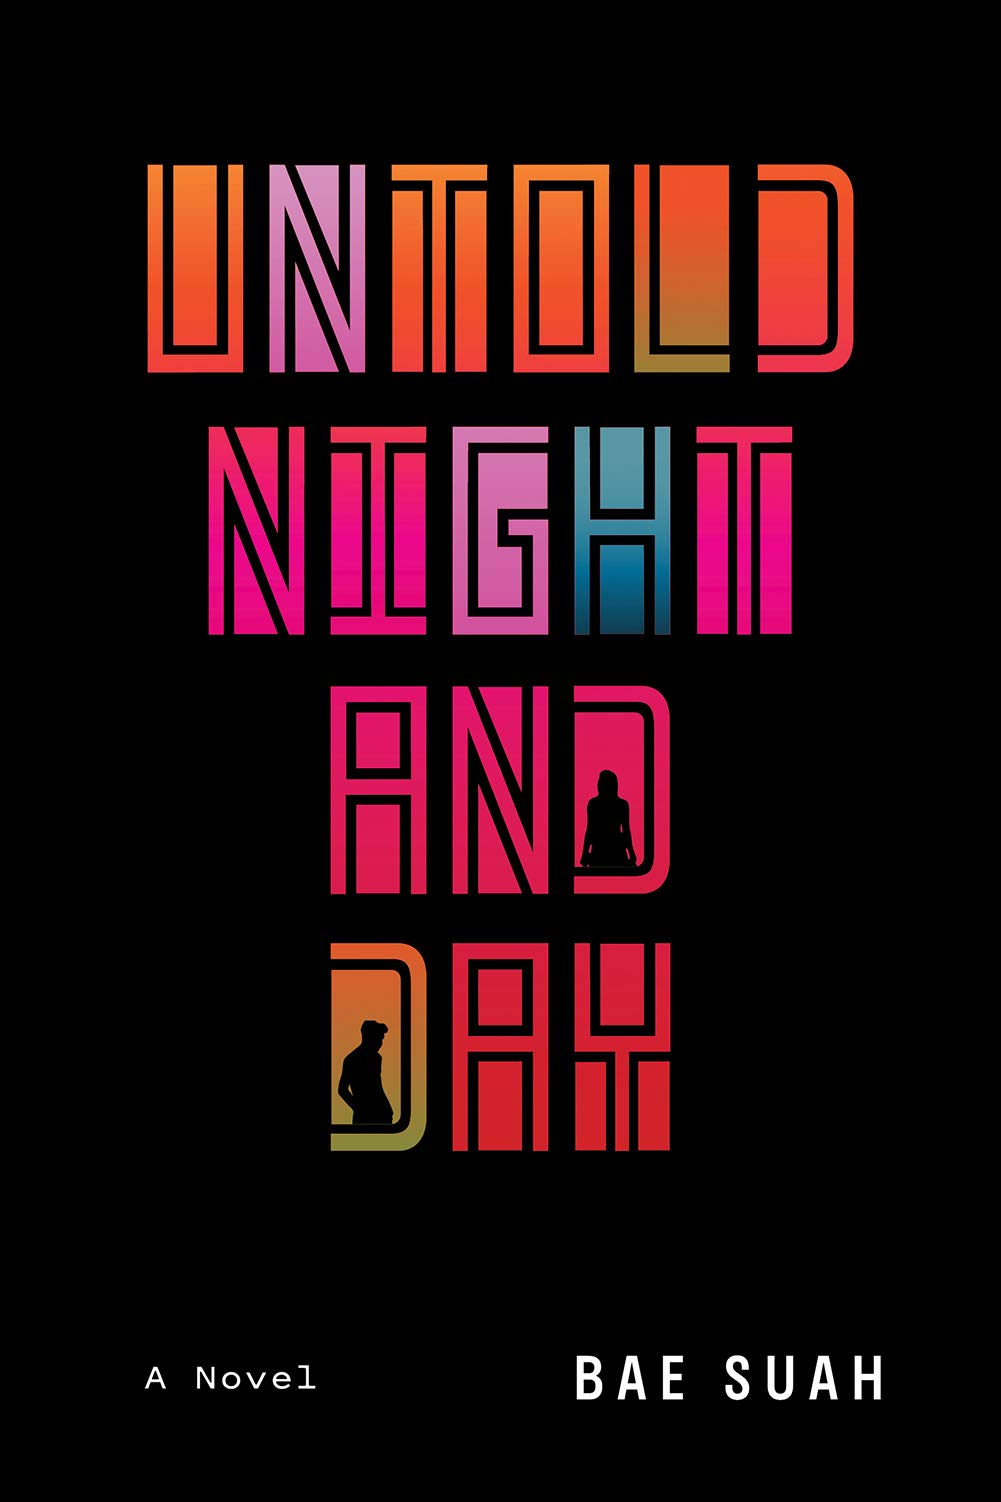 Untold Night and Day by Bae Suah